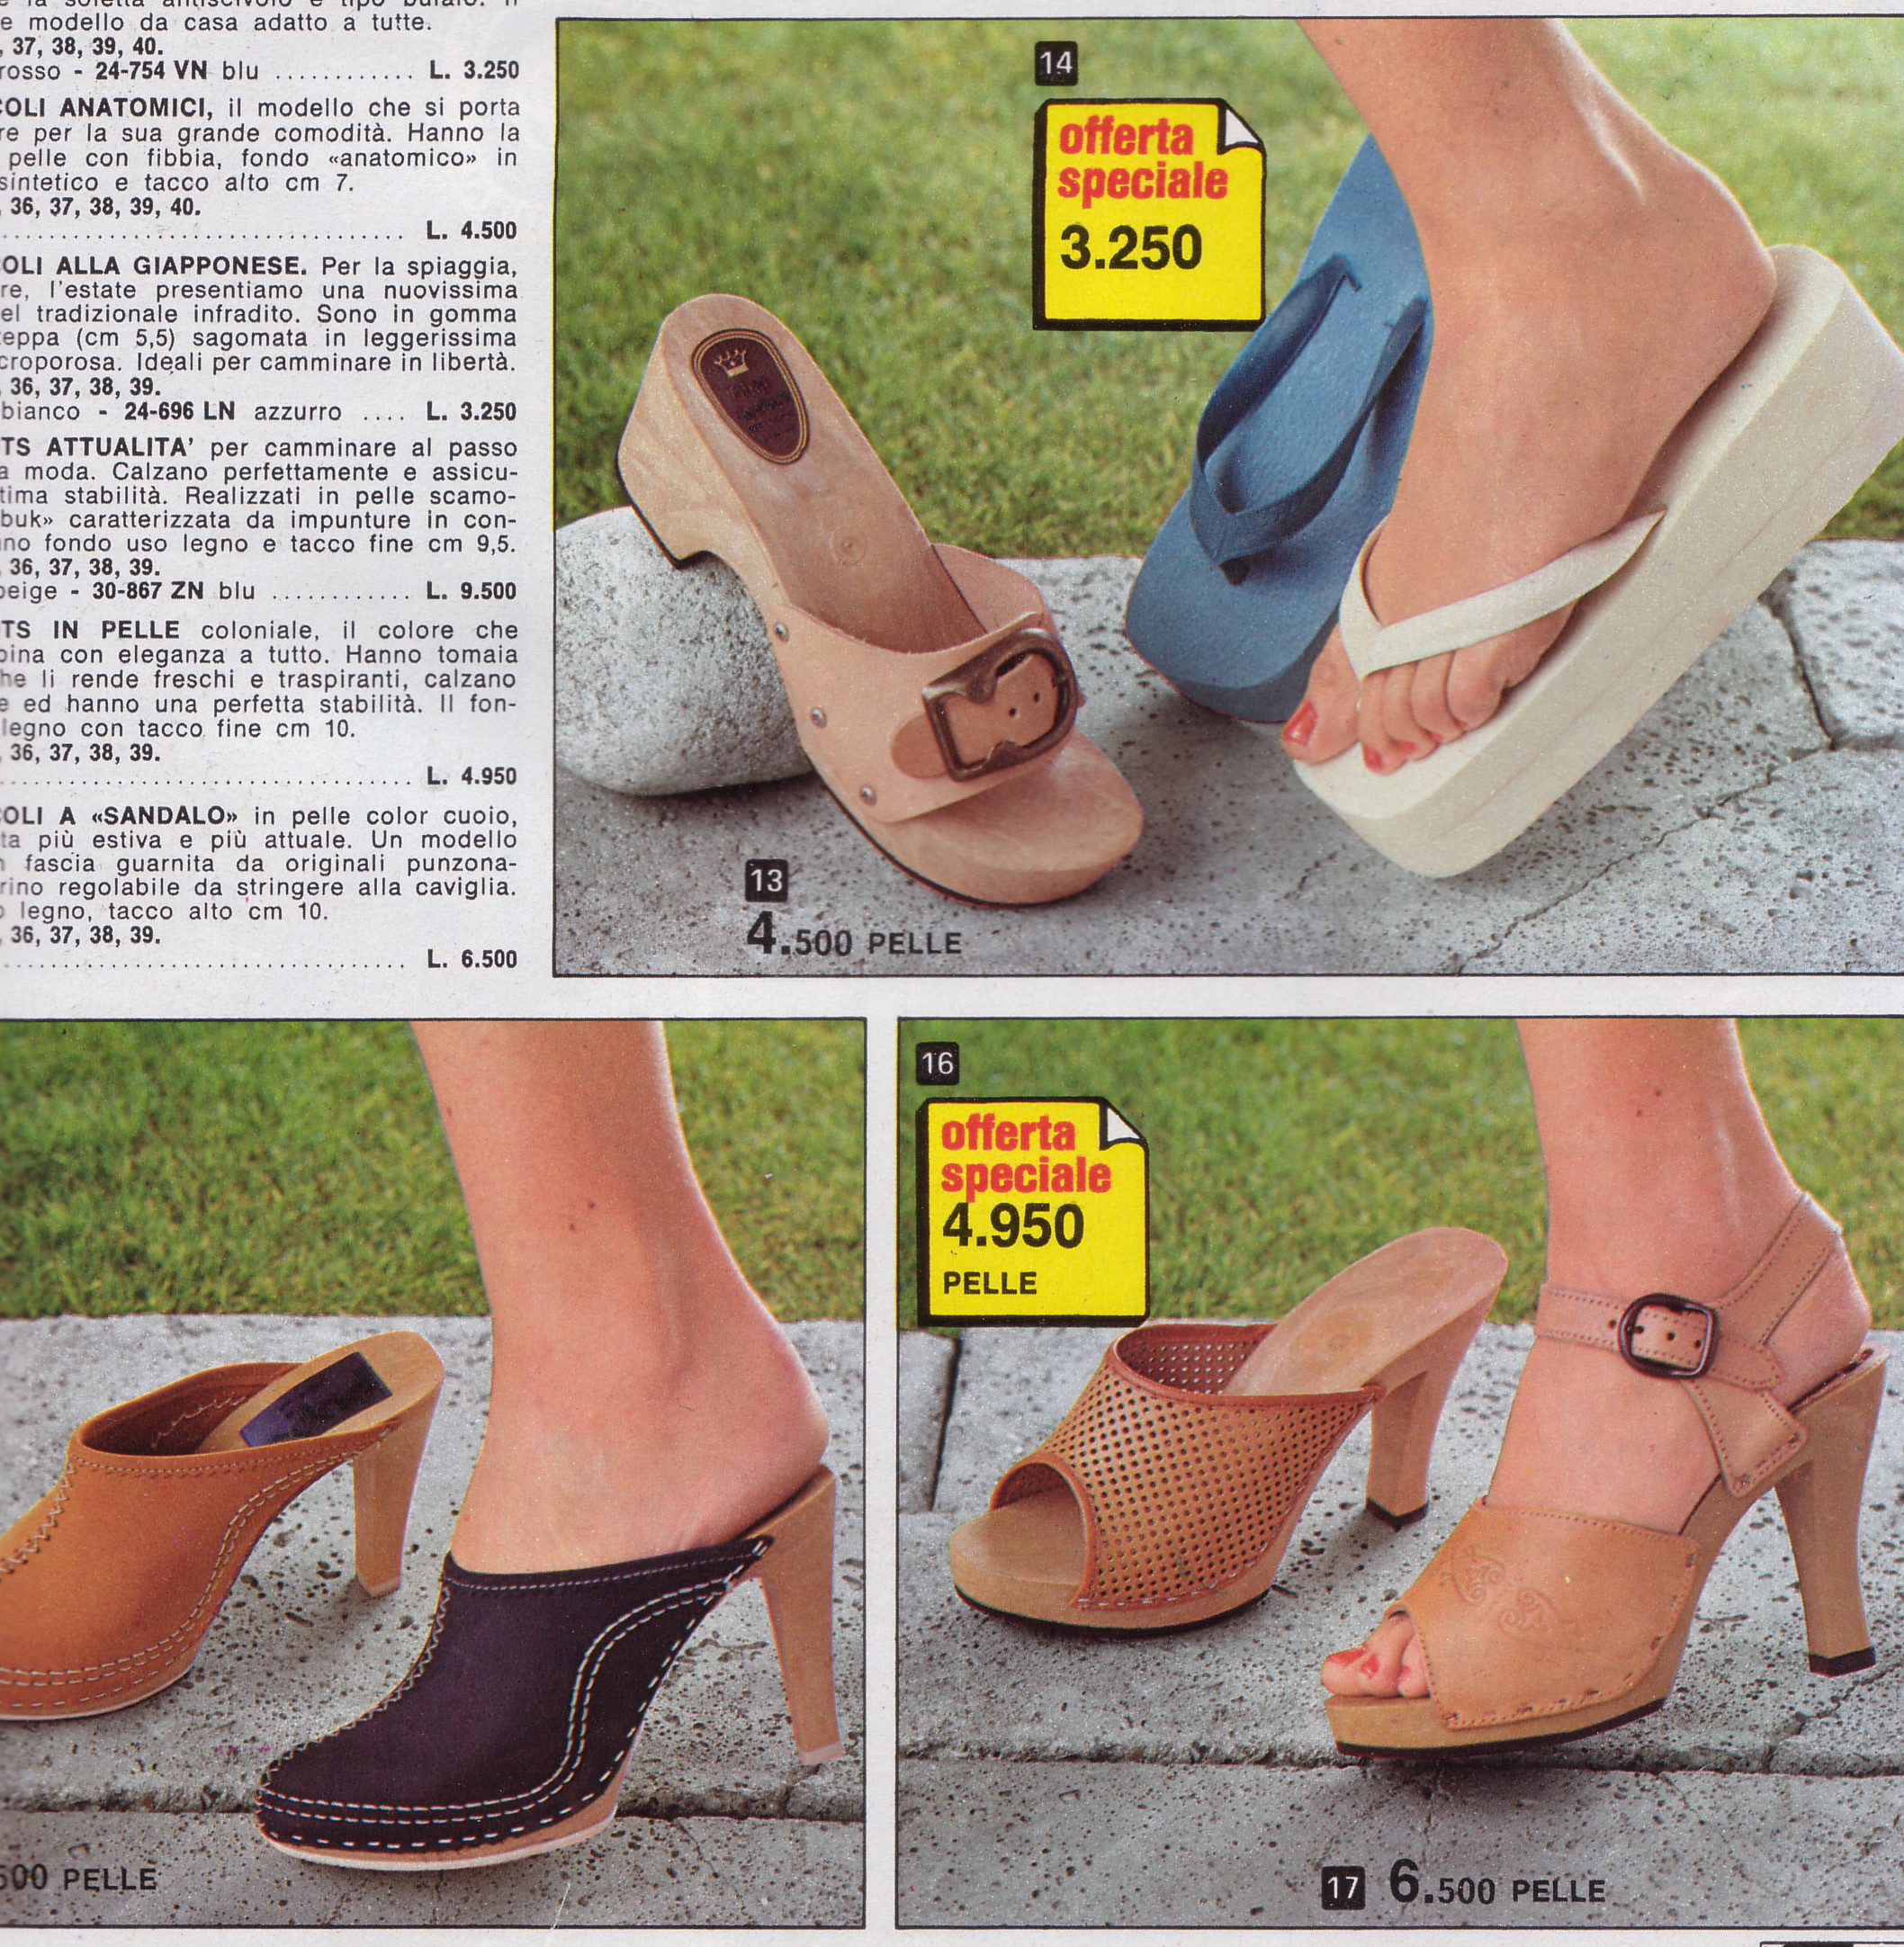 clogs-wooden-sandals-summer-1979